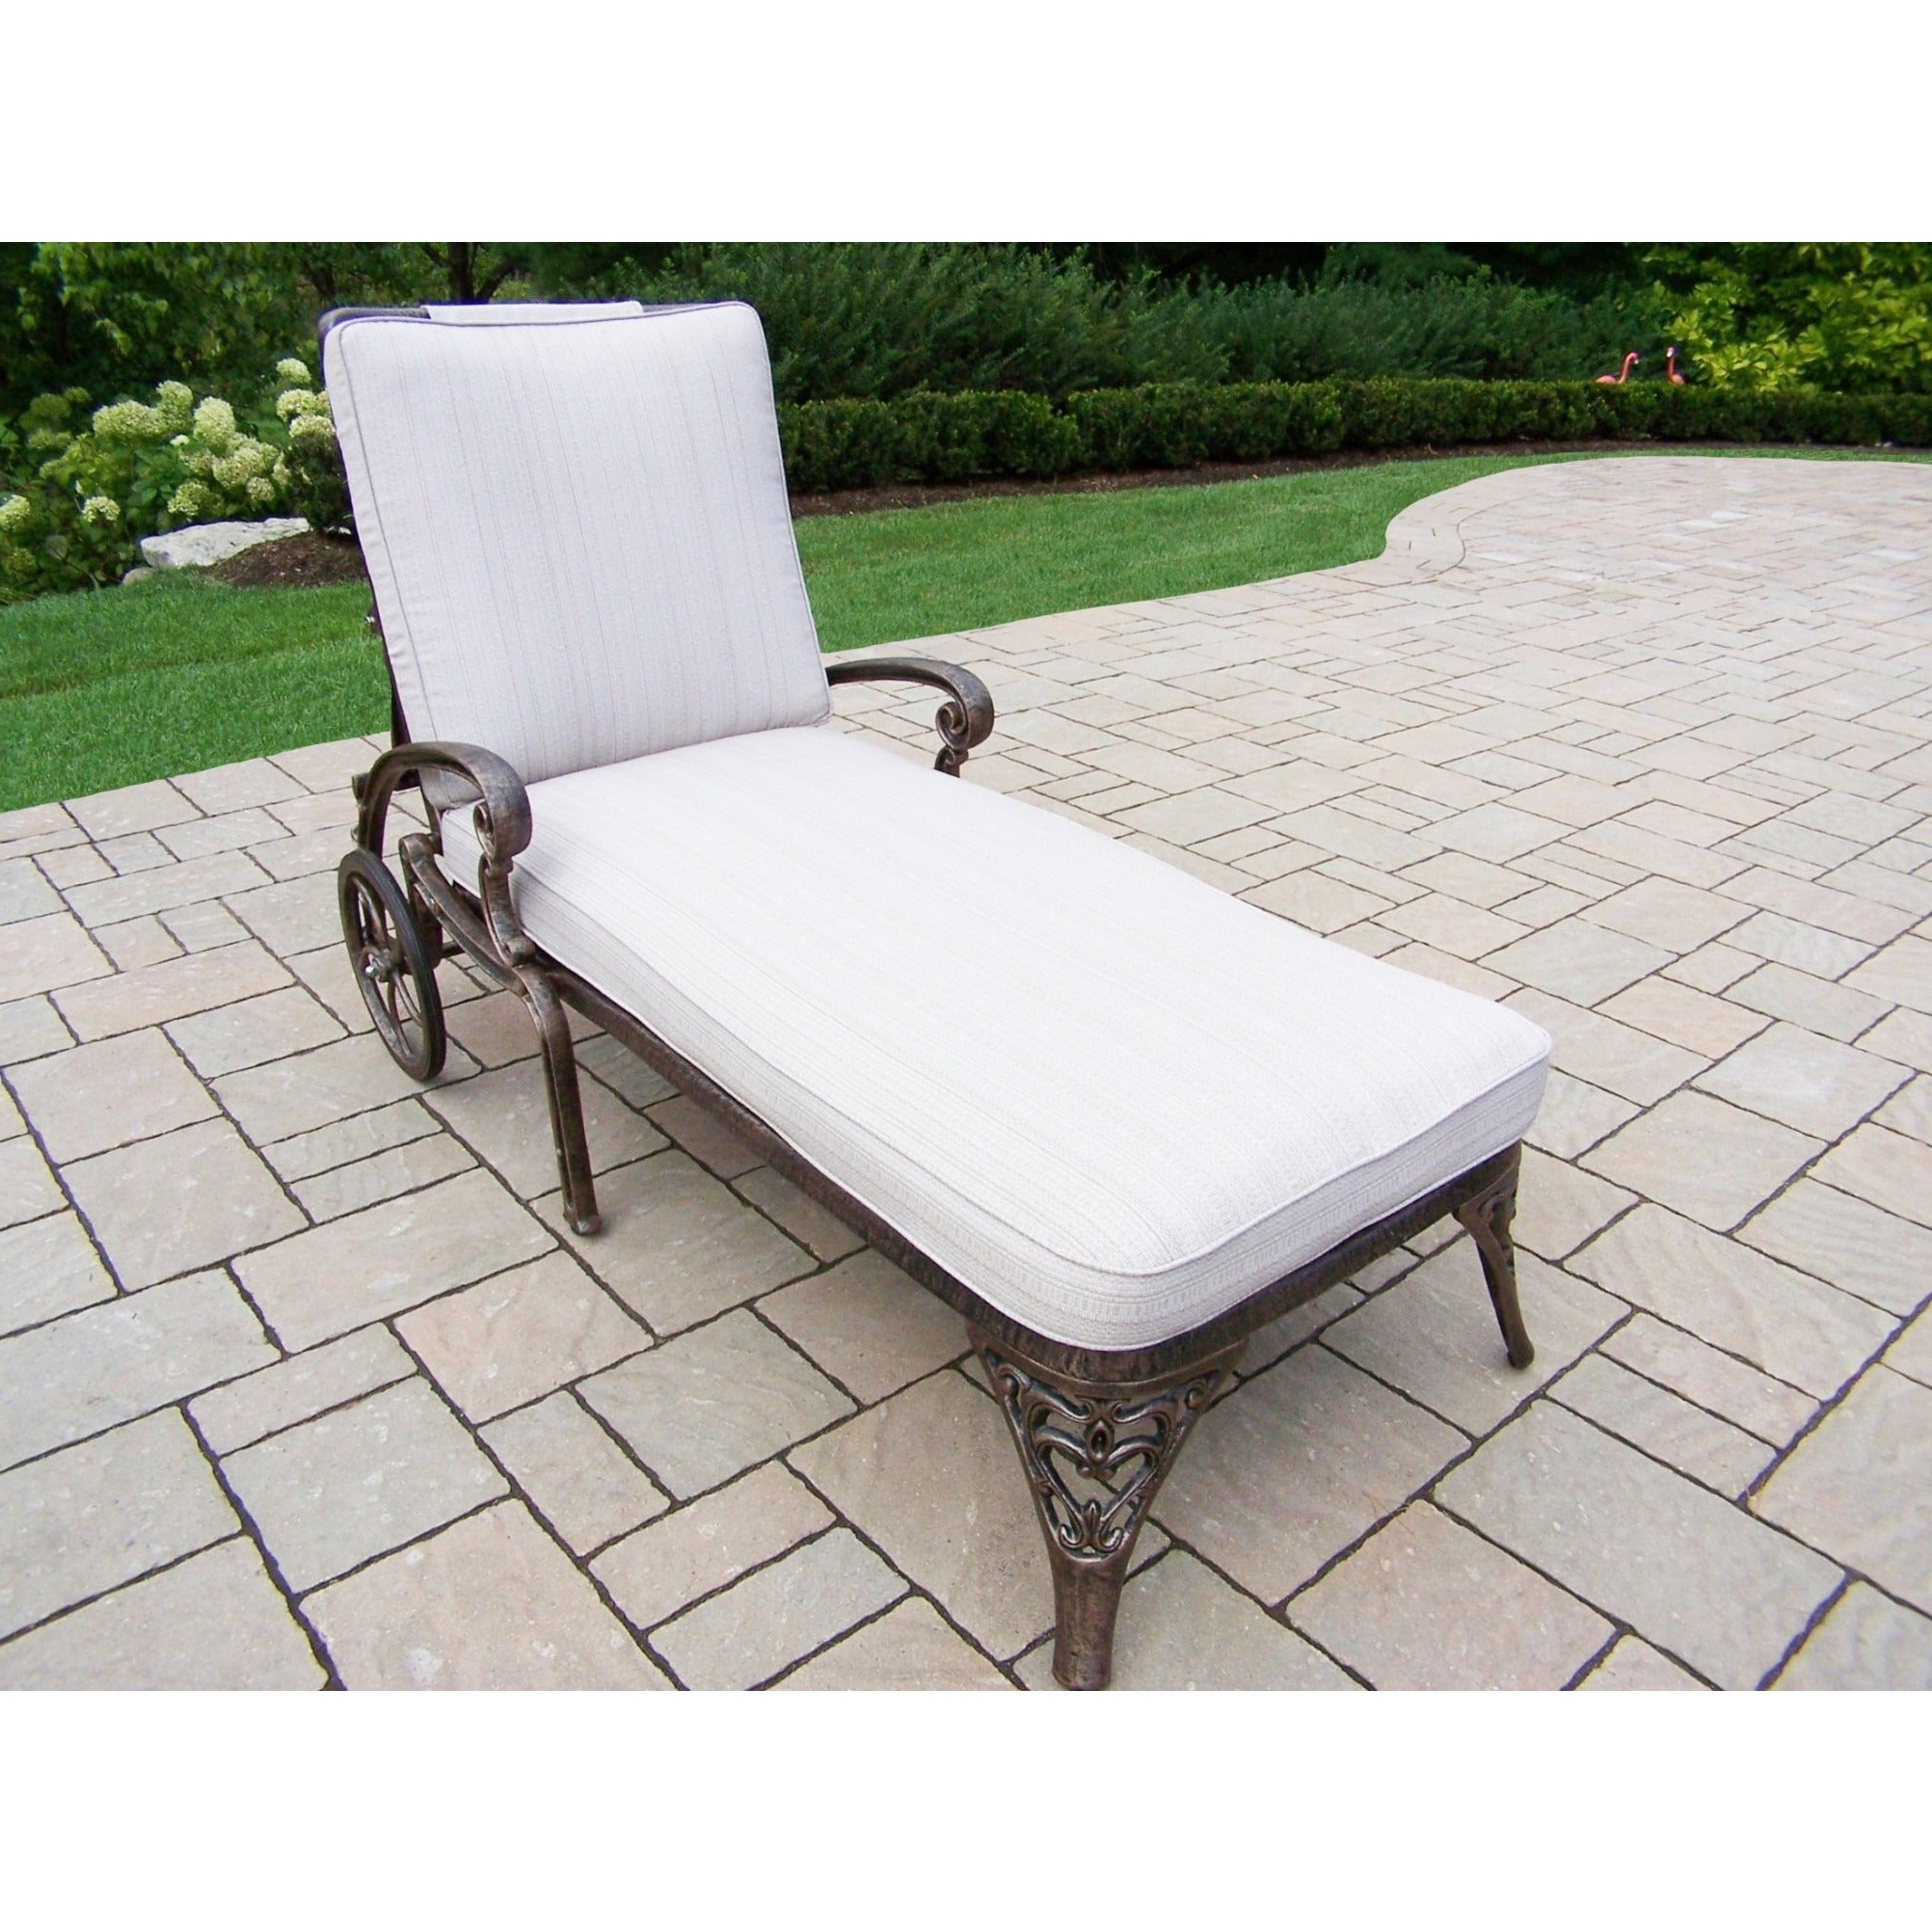 Floral Blossom Chaise Lounge Chairs With Cushion Throughout Preferred Dakota Cushioned Cast Aluminum Chaise Lounge With Wheels (View 13 of 25)